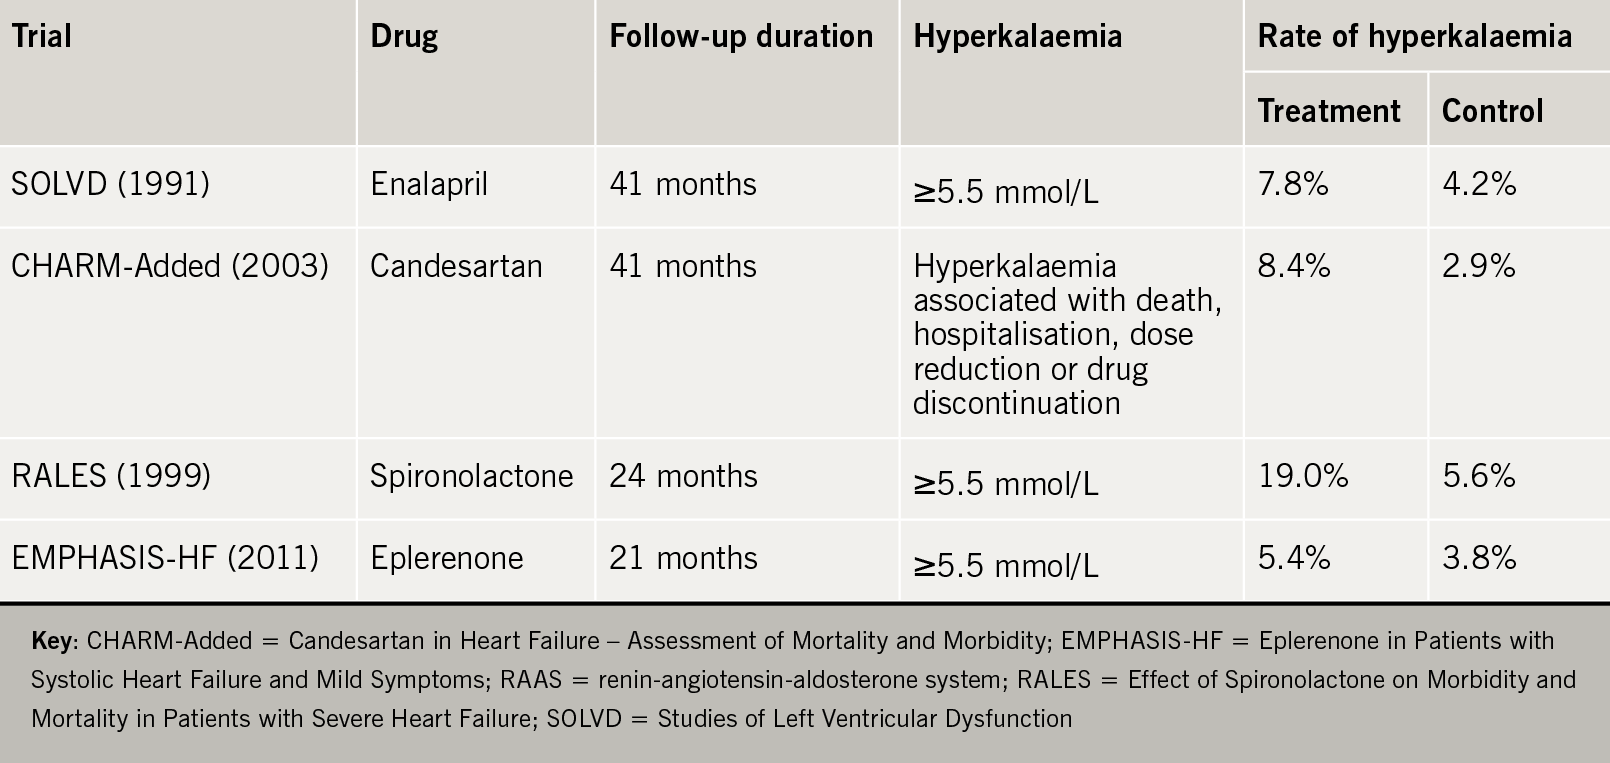 Heart failure learning module 5: Table 3. Rates of hyperkalaemia in clinical trials of drugs that inhibit the RAAS in patients with heart failure